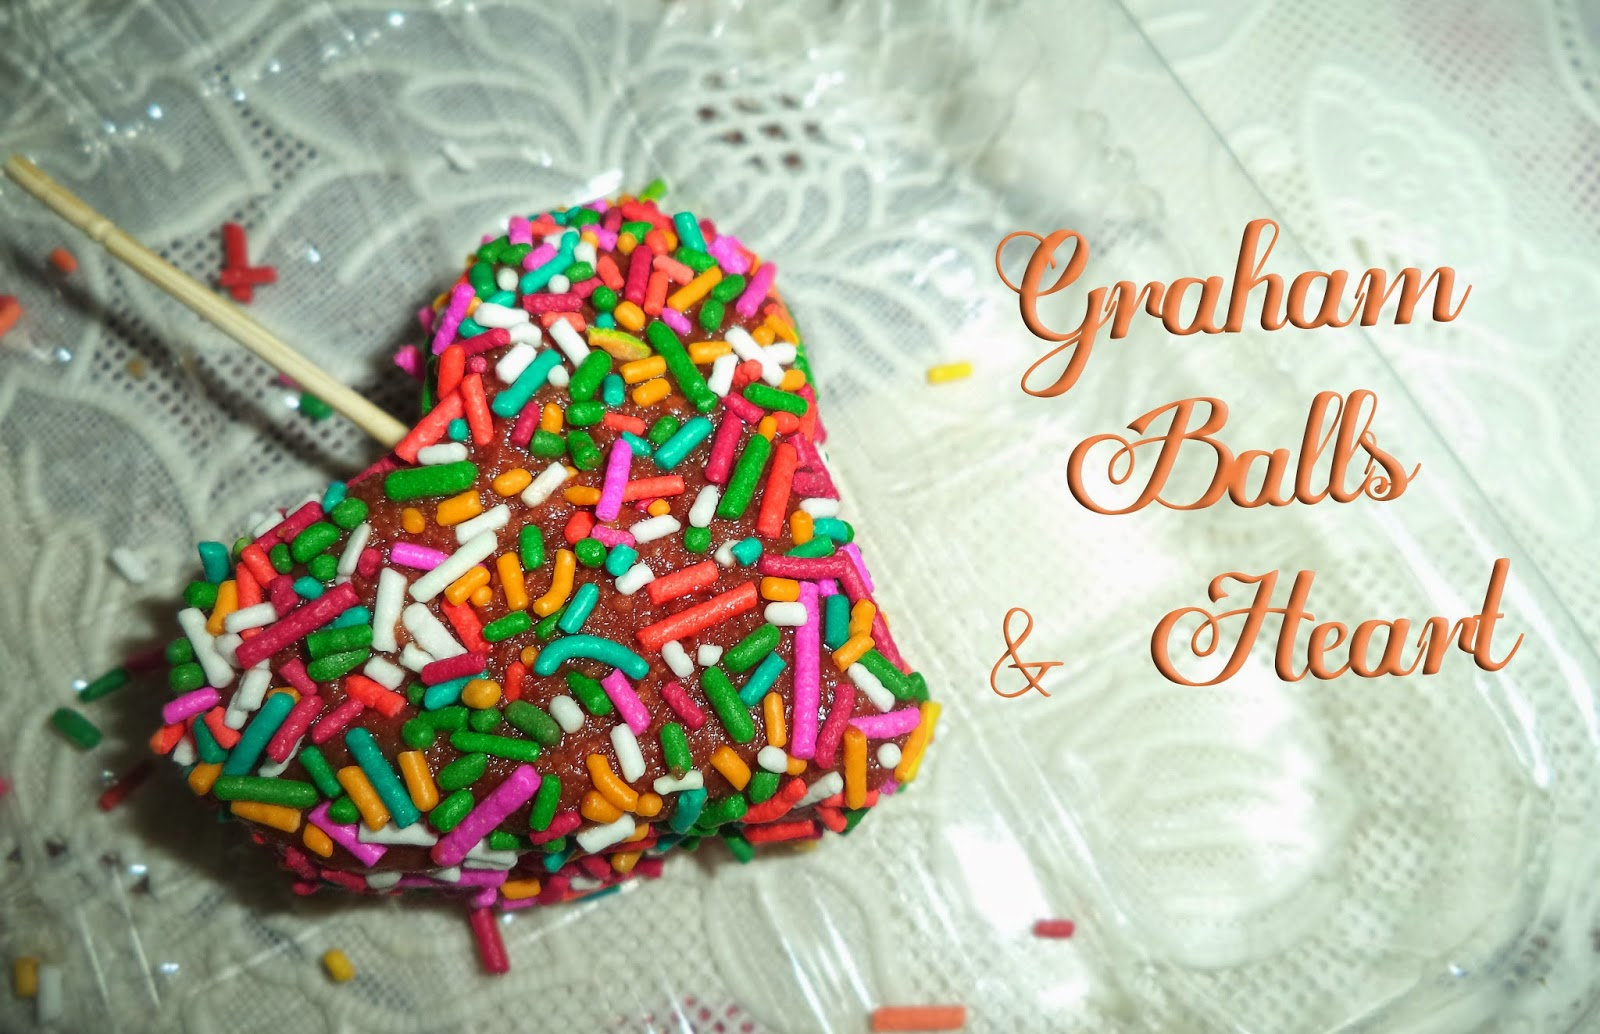 This is how I make my own Graham Balls and Hearts using cookie cutter or cookie molder.